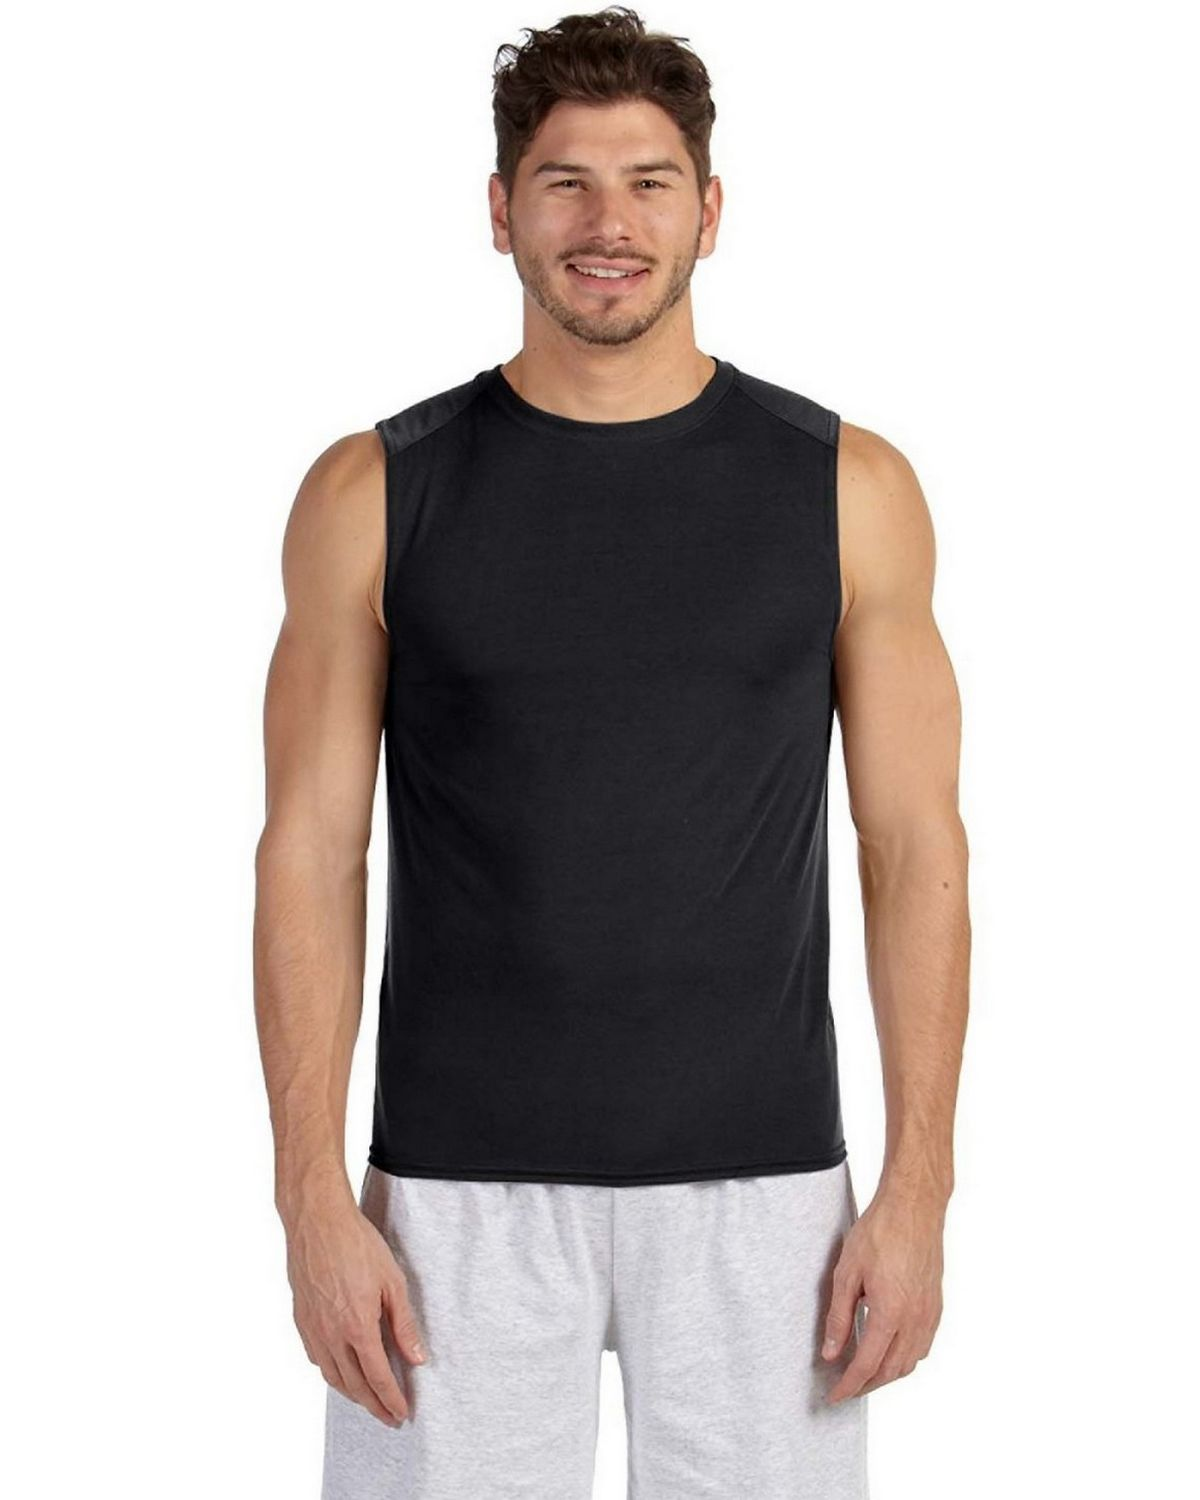 Gildan G427 Performance Sleeveless T Shirt - Black - L G427